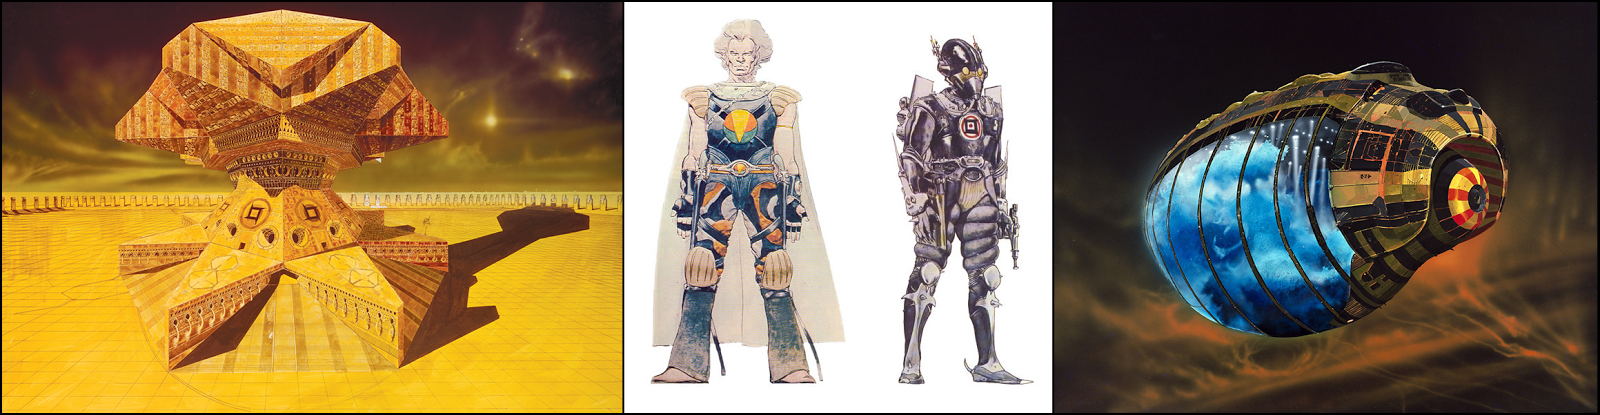 Download free concept art wallpapers by Moebius, Chris Foss, and H.R. Giger